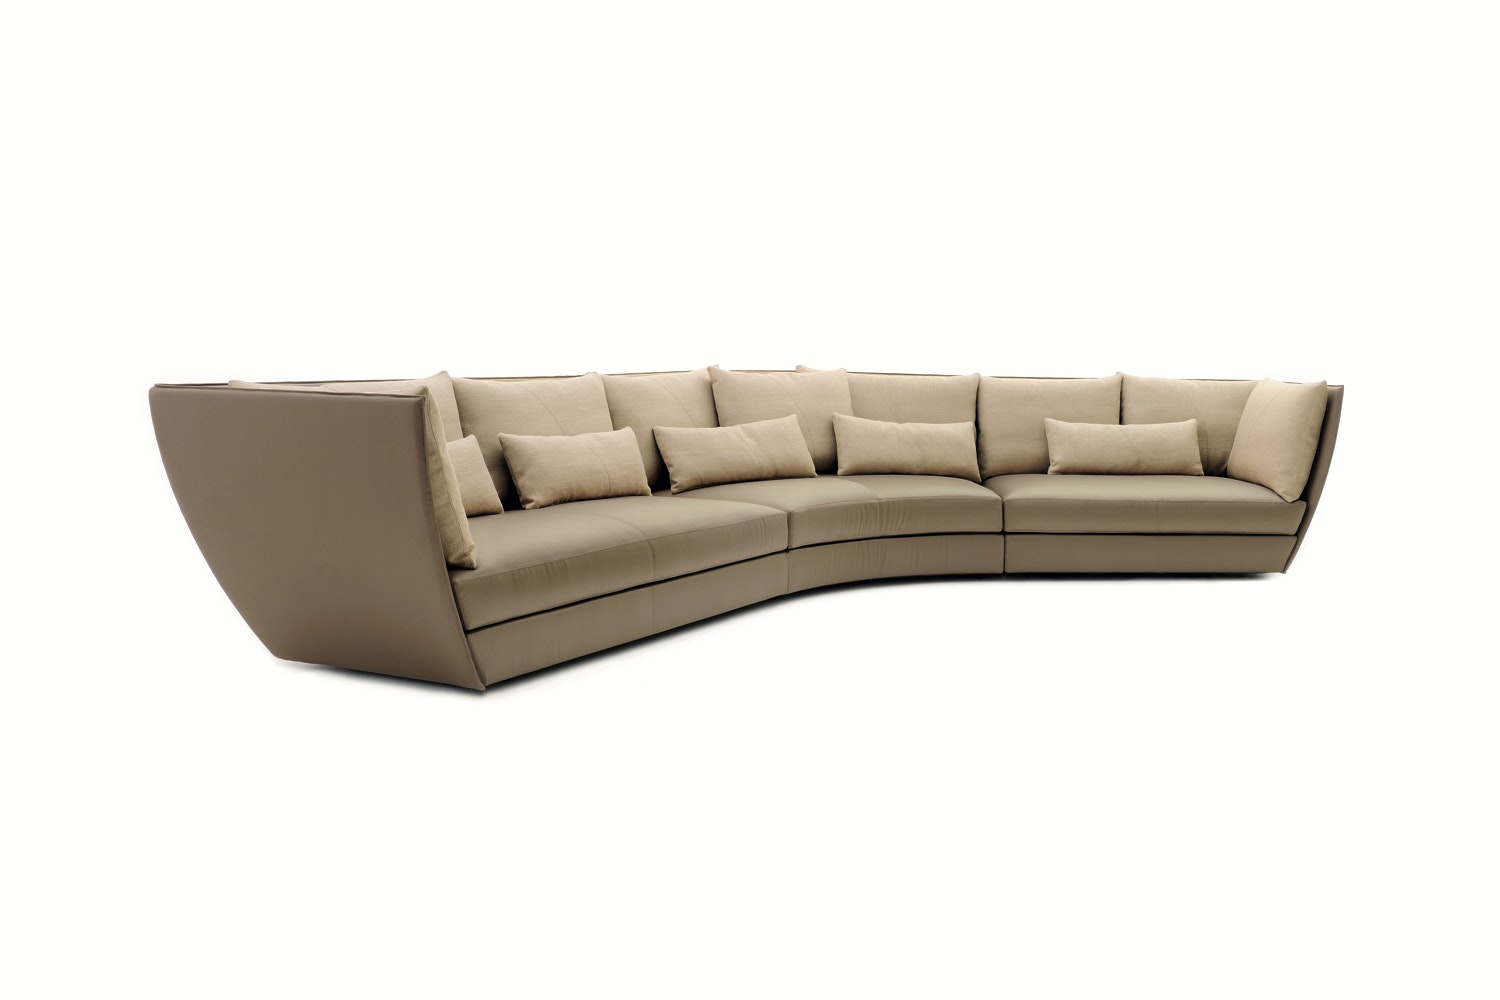 Dhow Sofa By Andrei Munteanu For Giorgetti Space Furniture